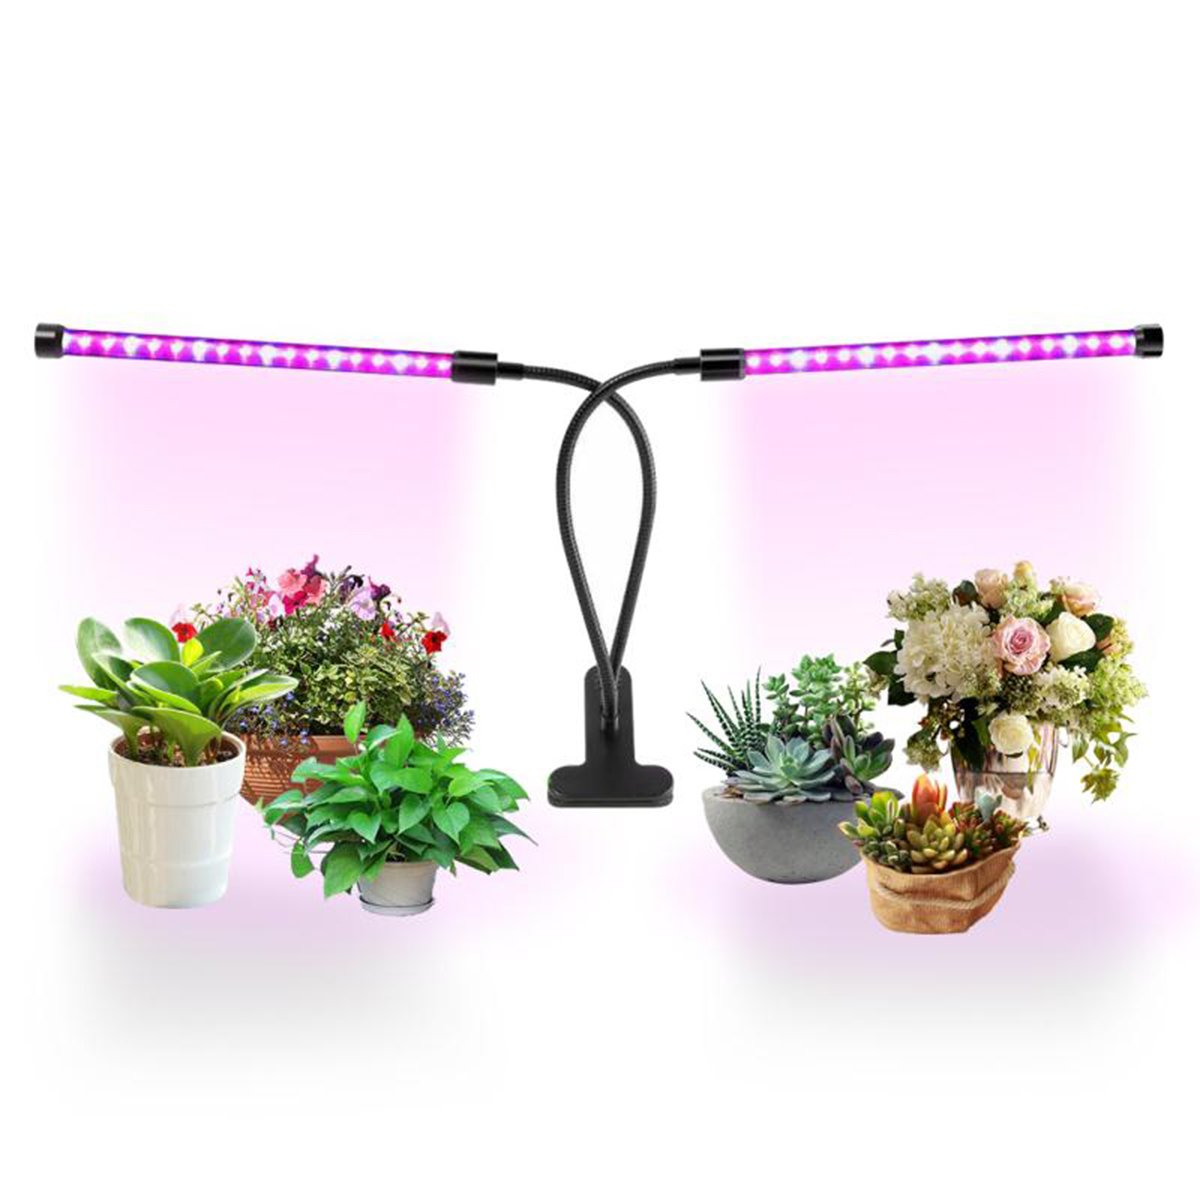 LED Grow Light,Youmeet 18W Professional Dual Heads Plant lamps,360°Flexible,Two Separate Control Switches, for Indoor Plants Hydroponics Greenhouse Gardening Plants. by Youmeet